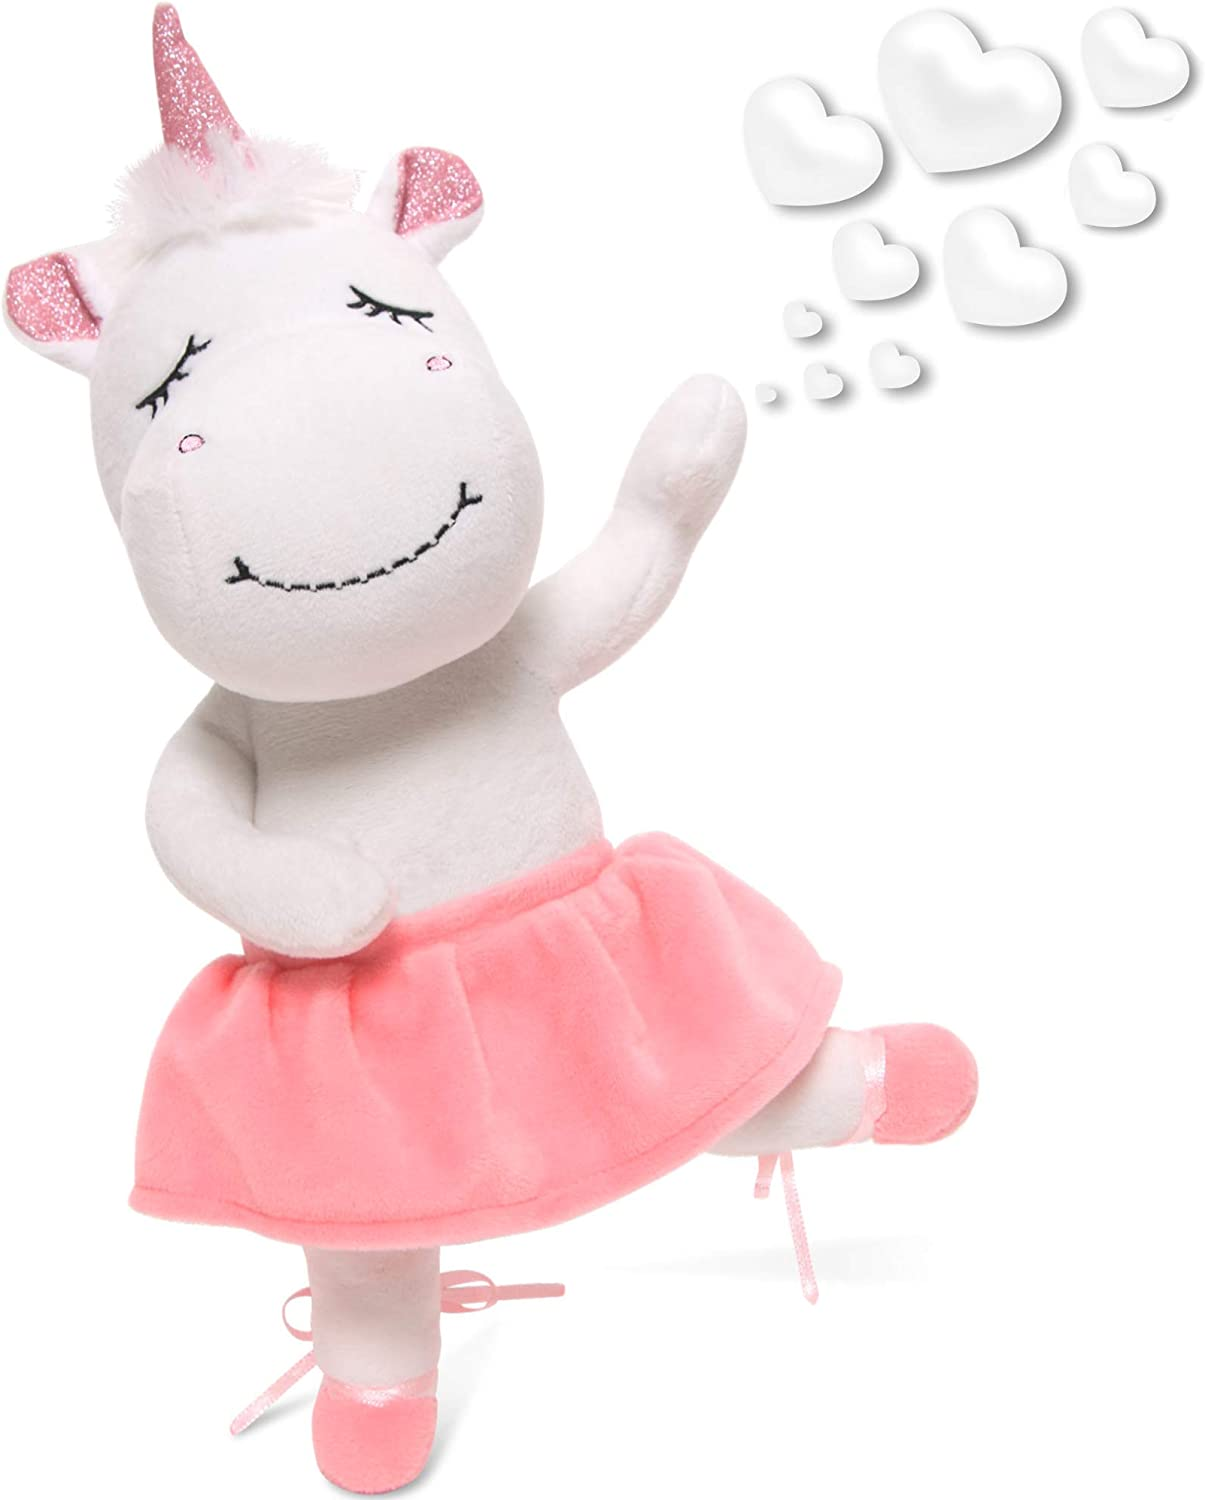 Birthday or Valentines Gift for Girls infloatables Cute Unicorn Gifts Large 13 White Unicorns Plush Toy w Pink Wings Rainbow Hair /& Writable Pink Heart Paws Unicorn Stuffed Animal Gift Packaged for Graduation